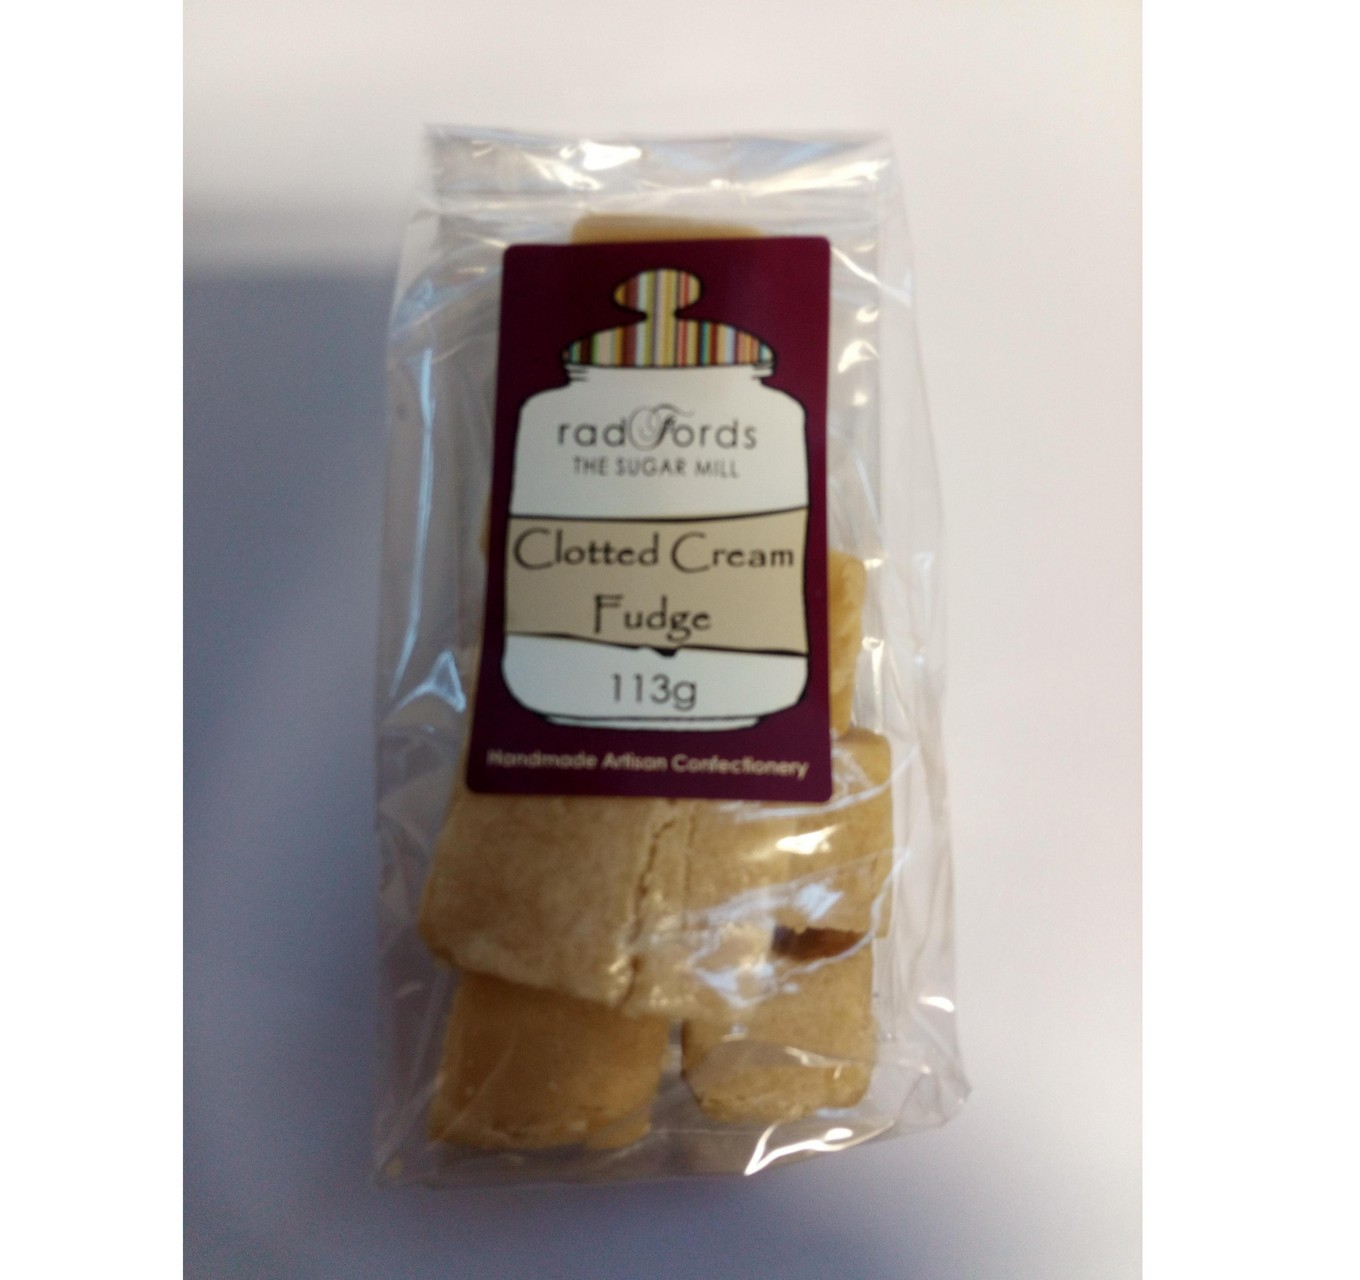 Clotted Cream Fudge 113g